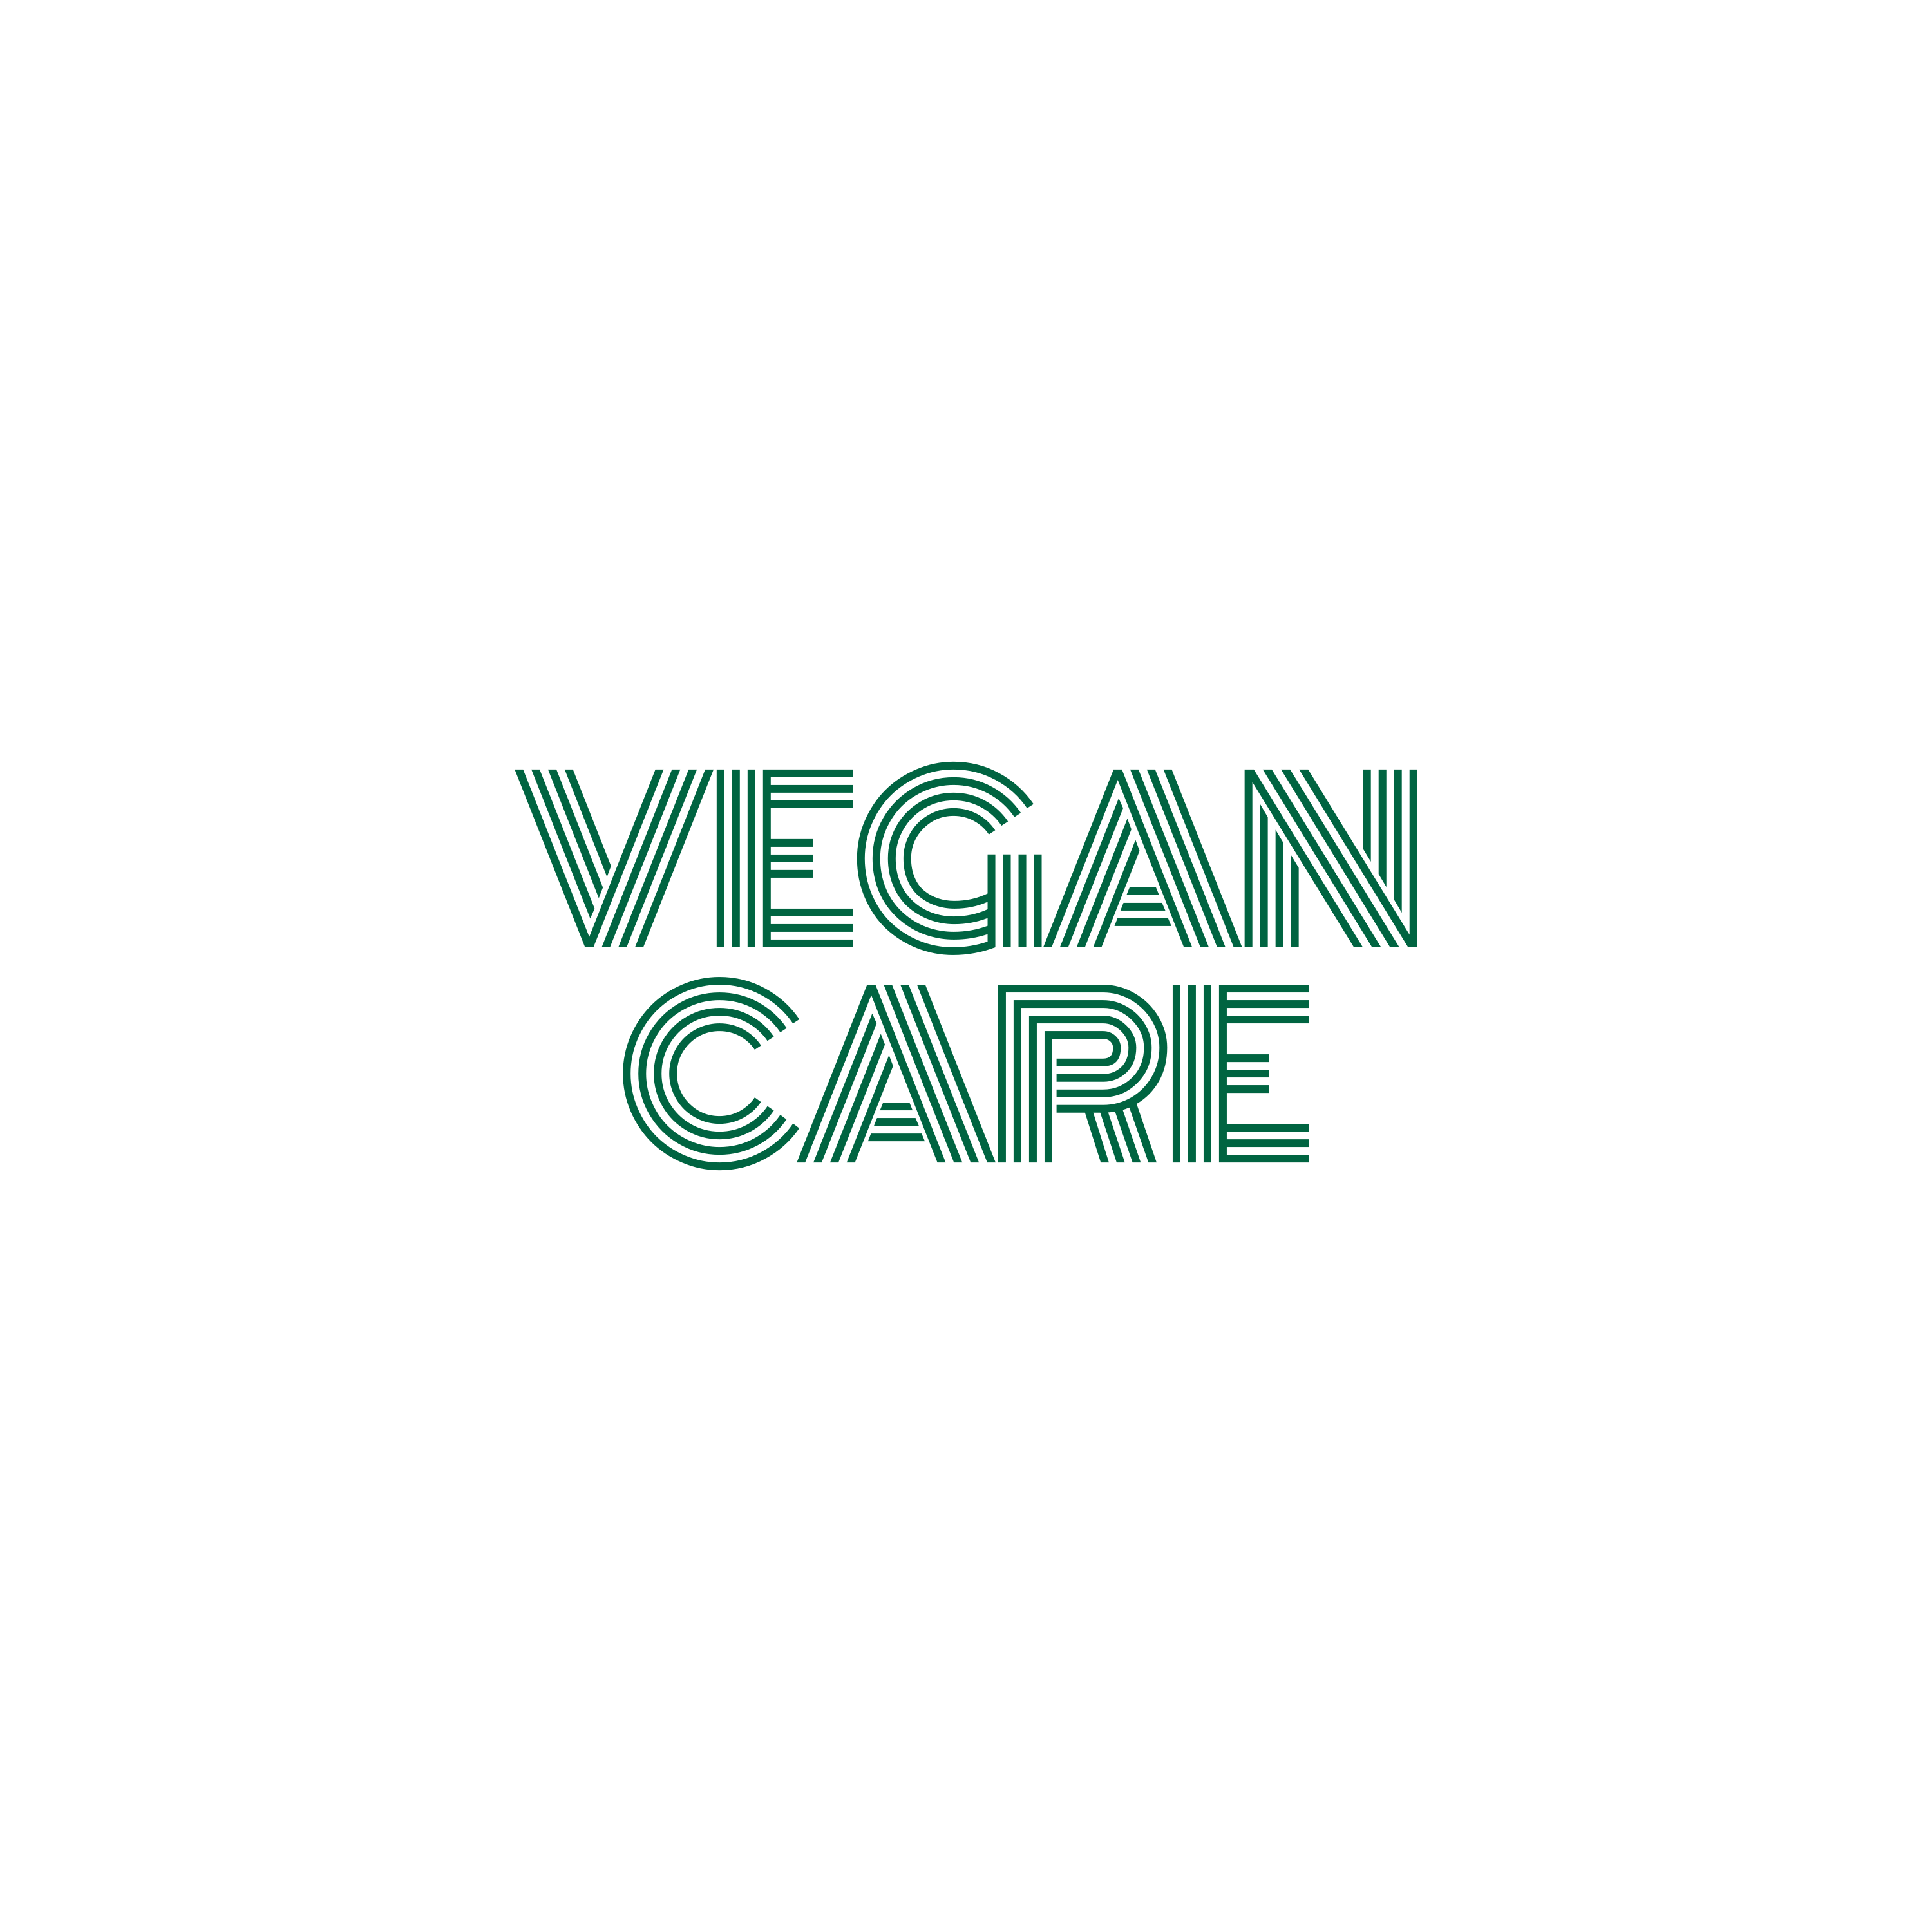 VEGAN CARE